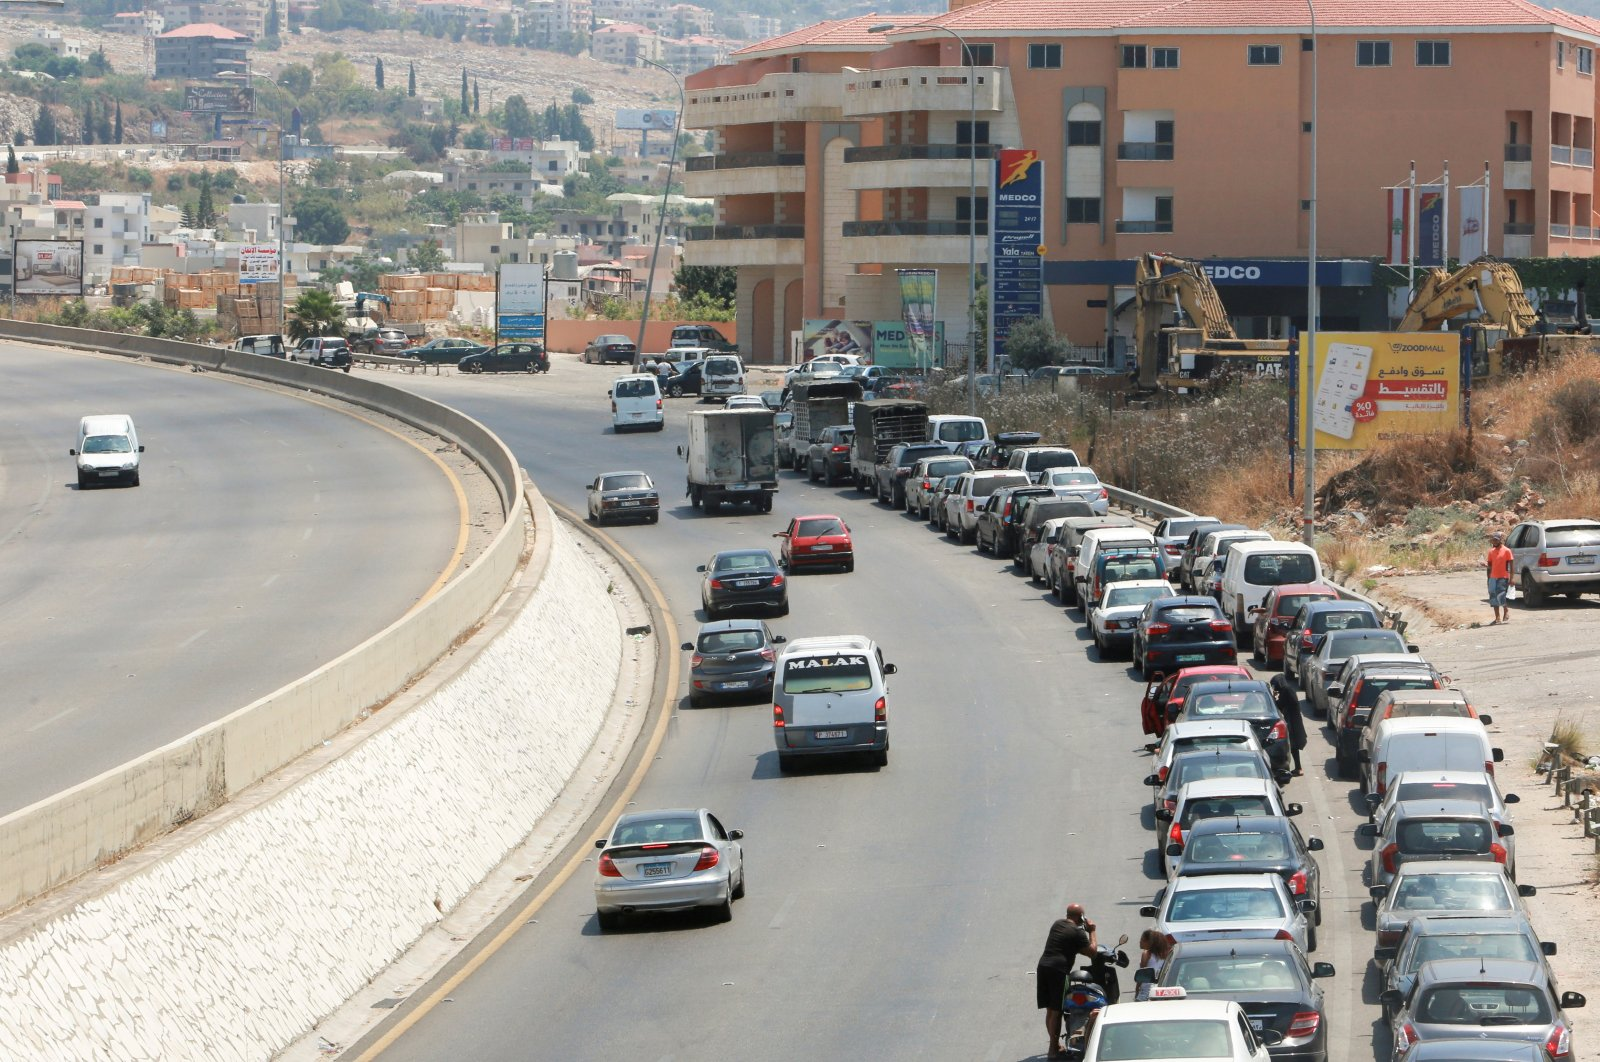 Cars line up to buy fuel at a gas station in Jiyeh, Lebanon, June 29, 2021. (Reuters Photo)